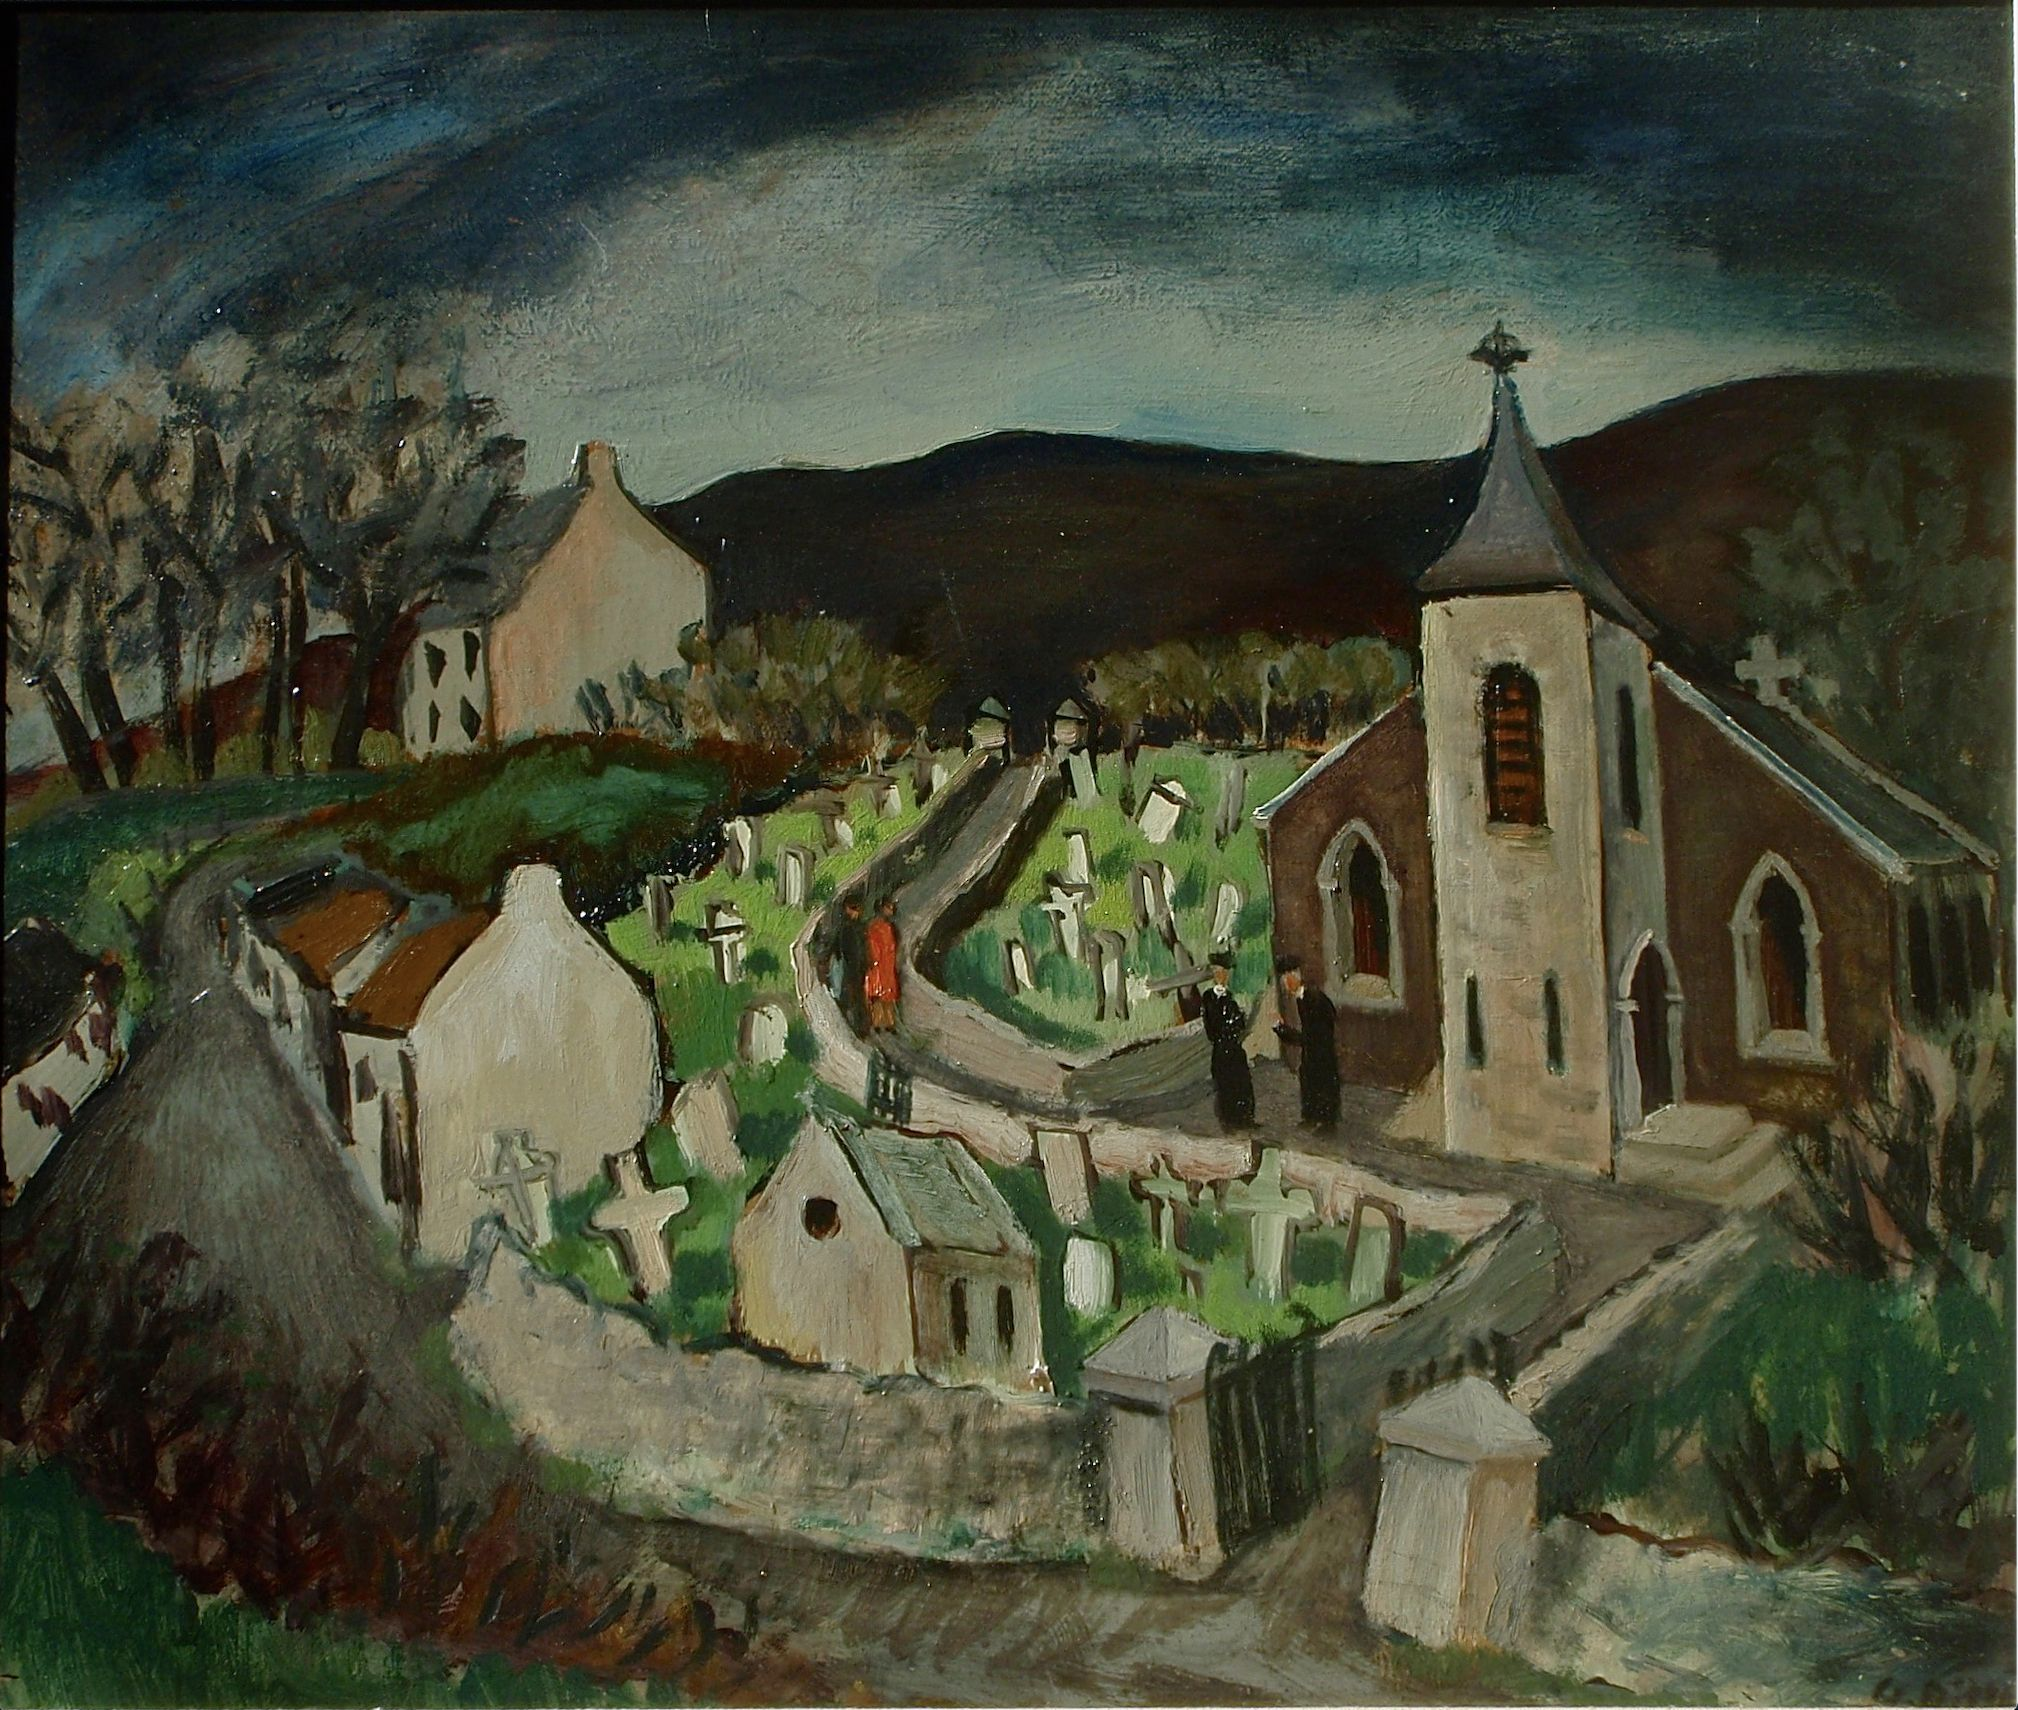 SOMETIMES ART\'S VALUE CAN\'T BE MEASURED BY CONSULTANTS: Hannahstown chapel and cemetery by West Belfast artist Gerard Dillon.